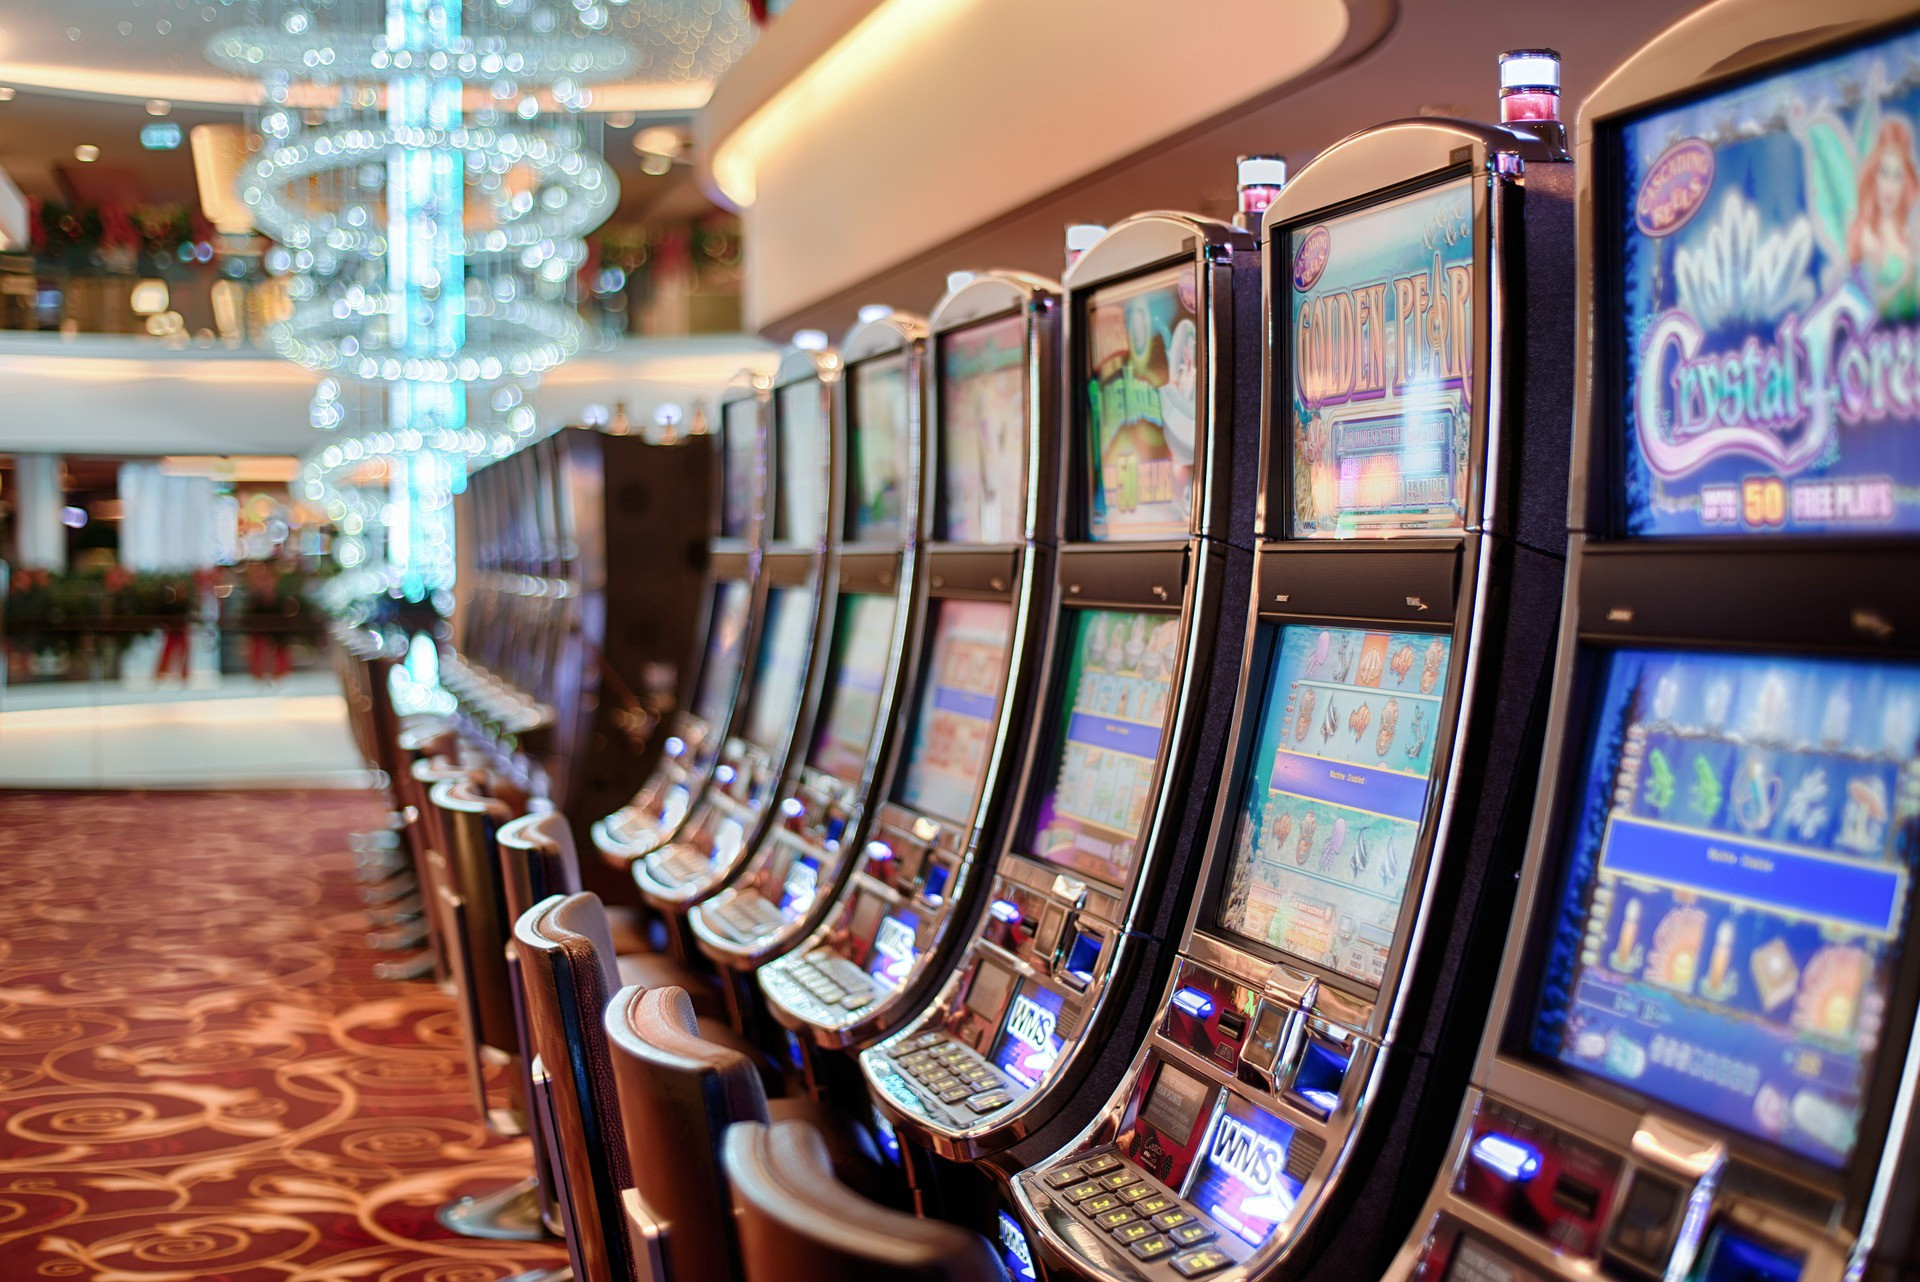 Insane Ways to Splurge Your Gambling Winnings in Vegas